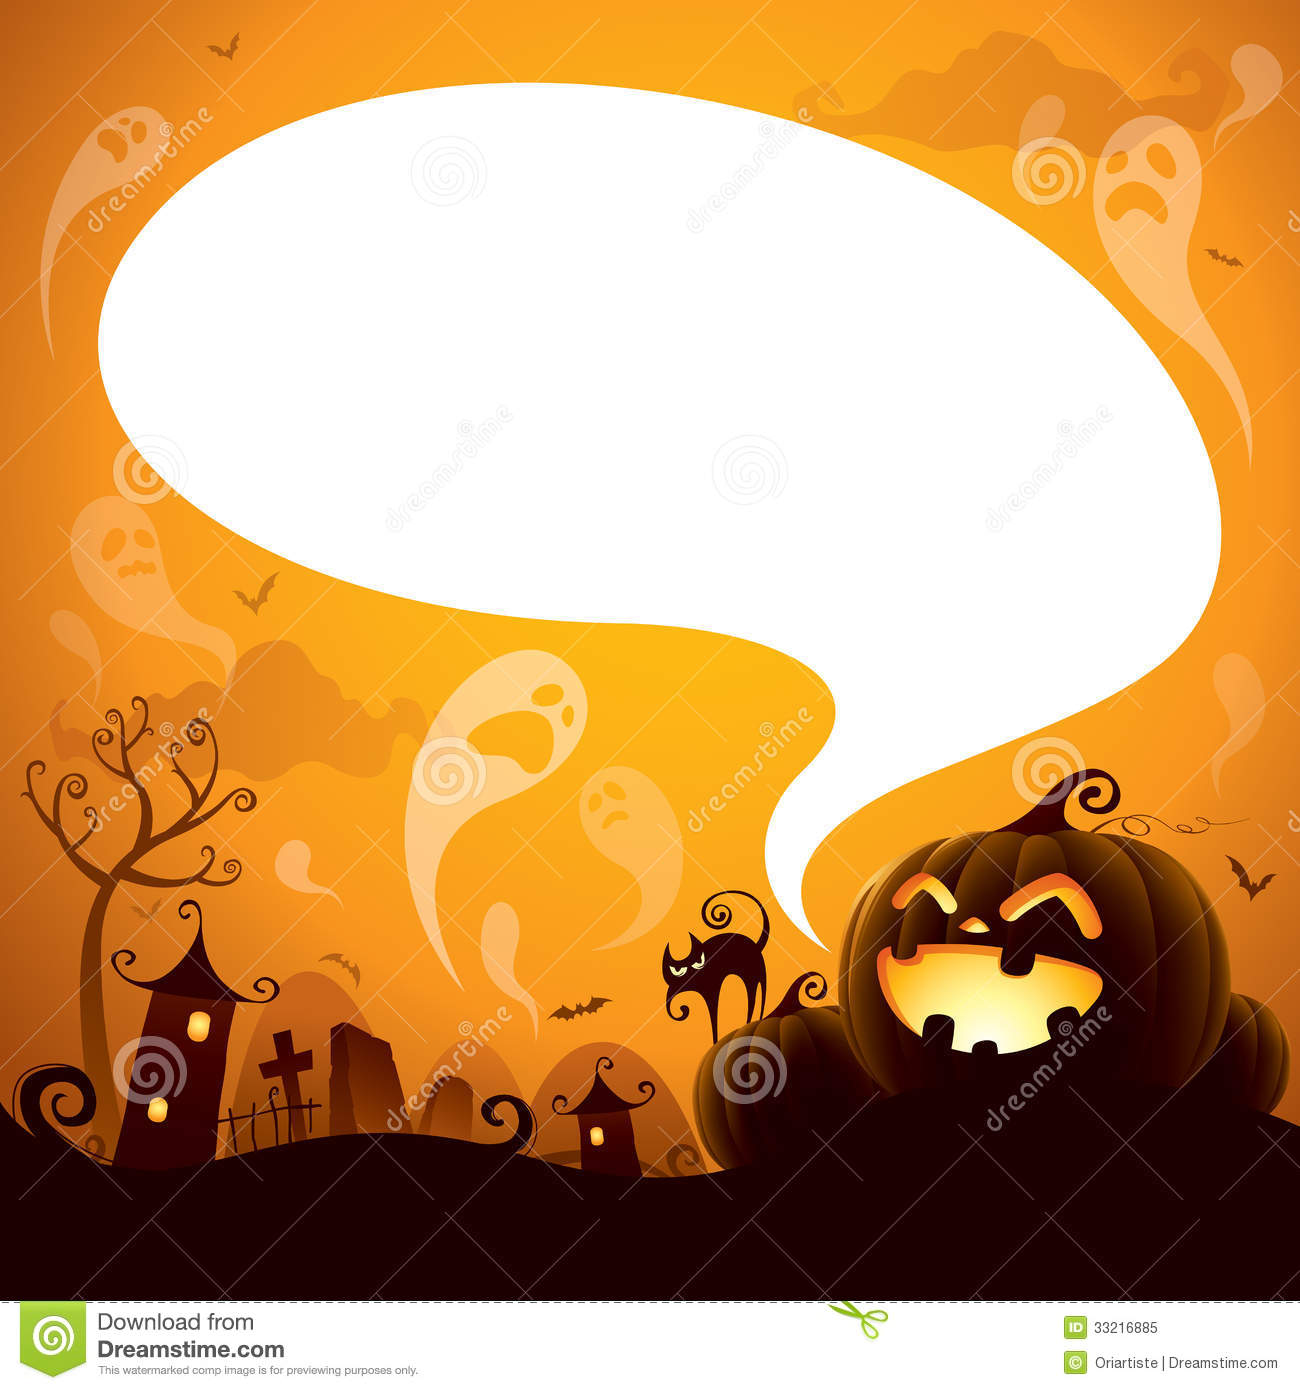 Halloween Jack-o-lantern With Speech Bubble Stock Vector ...